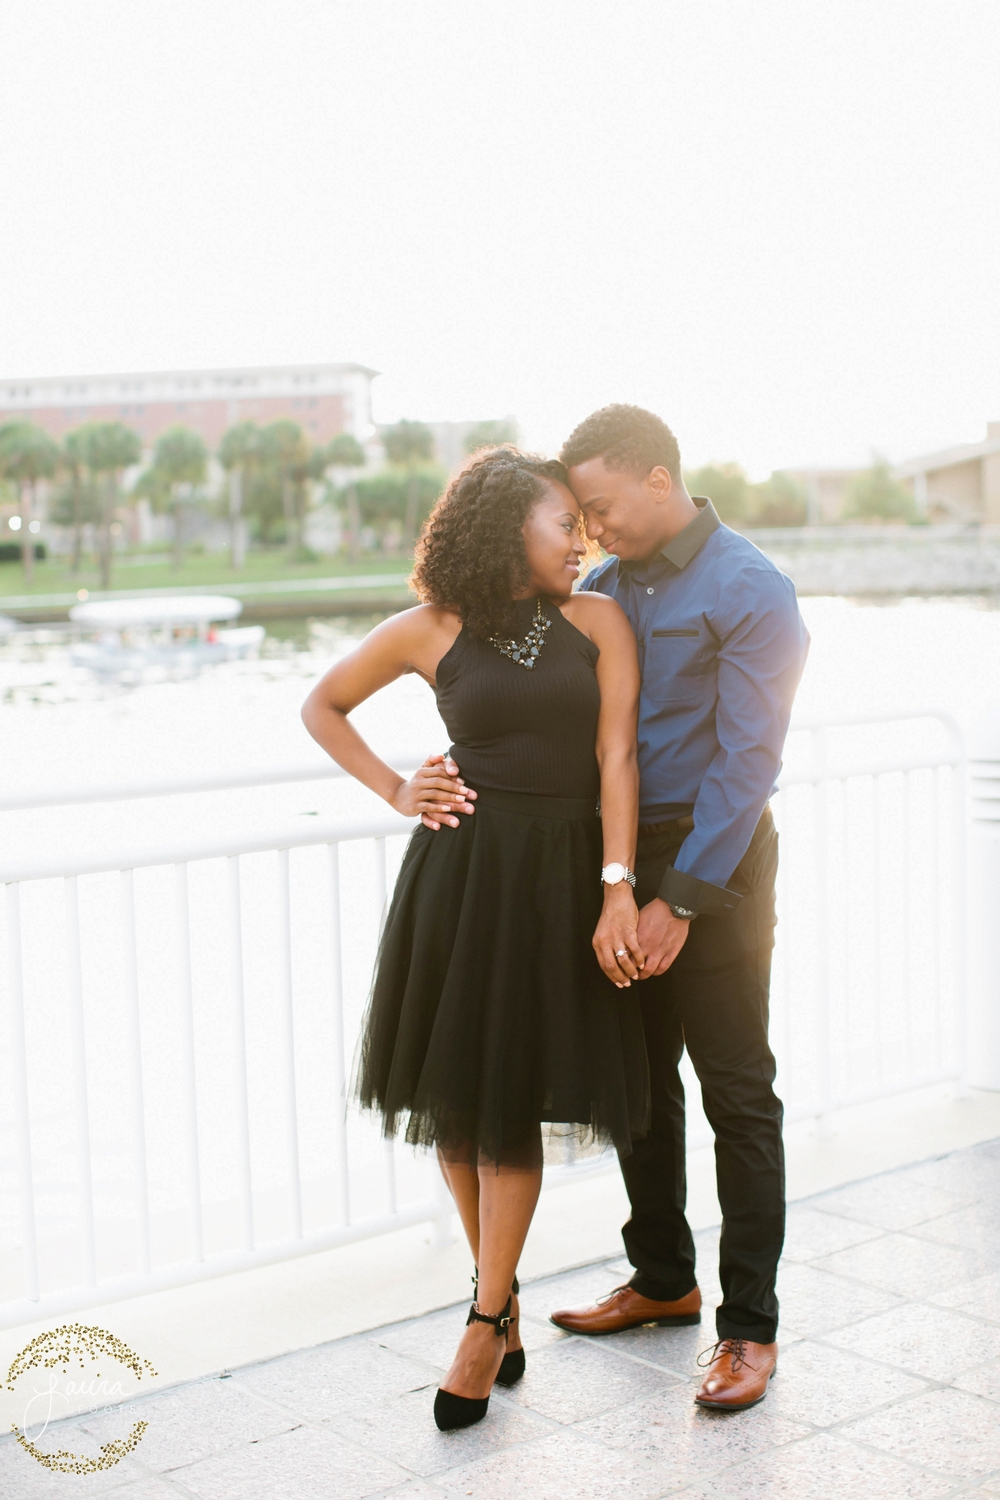 Rivercrest Park Tampa Heights engagement session by Laura Foote_0941.jpg